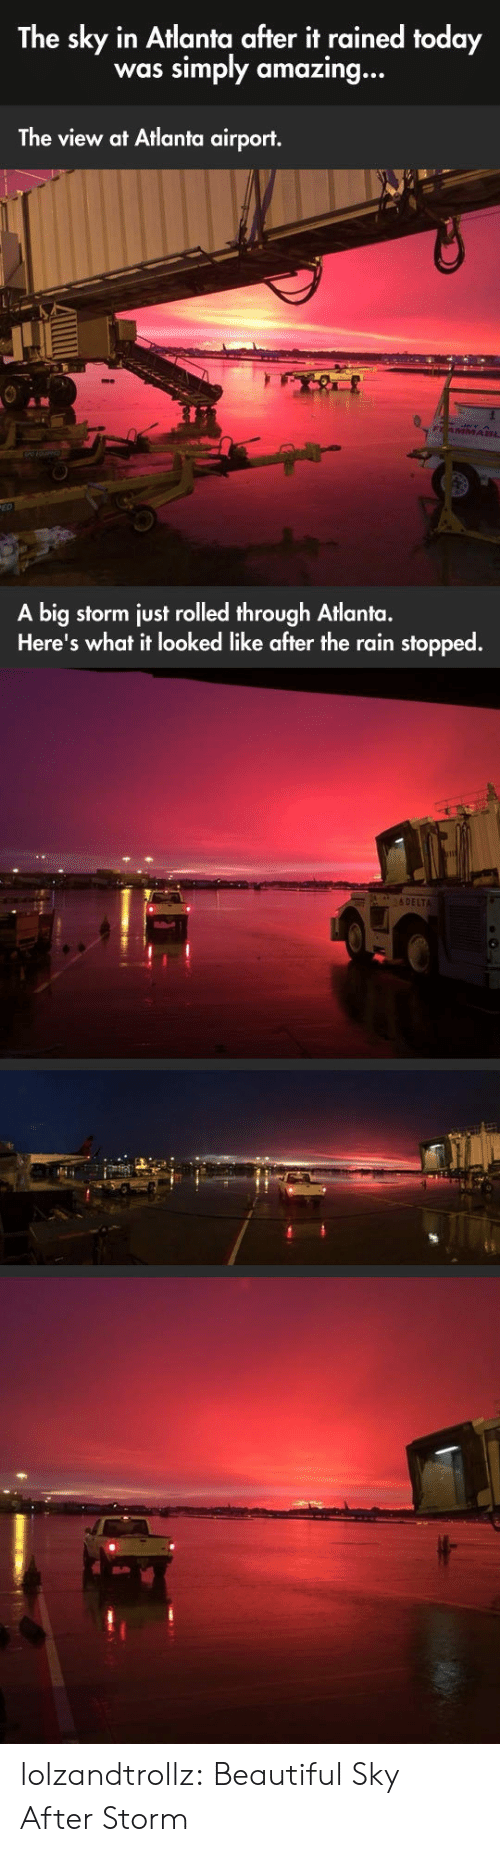 The View: The sky in Atlanta after it rained today  simply amazing...  was  The view at Atlanta airport.  FAMMA8L  A big storm just rolled through Atlanta.  Here's what it looked like after the rain stopped.  &DELTA lolzandtrollz:  Beautiful Sky After Storm